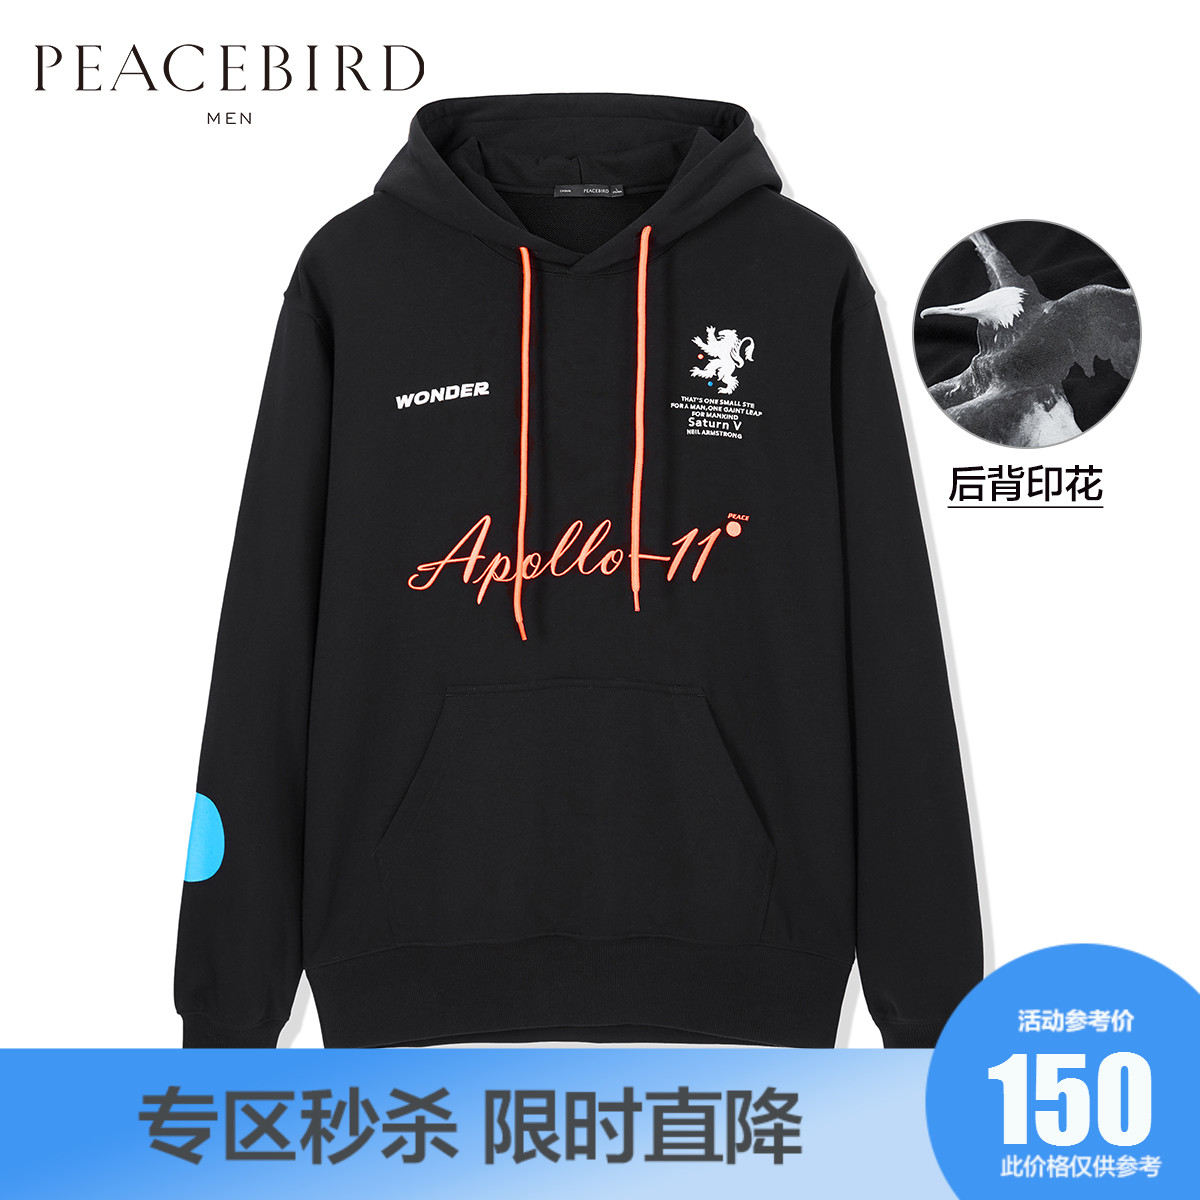 Taiping bird men's Hooded Sweater men's new spring Korean leisure trend Pullover embroidery black sweater men